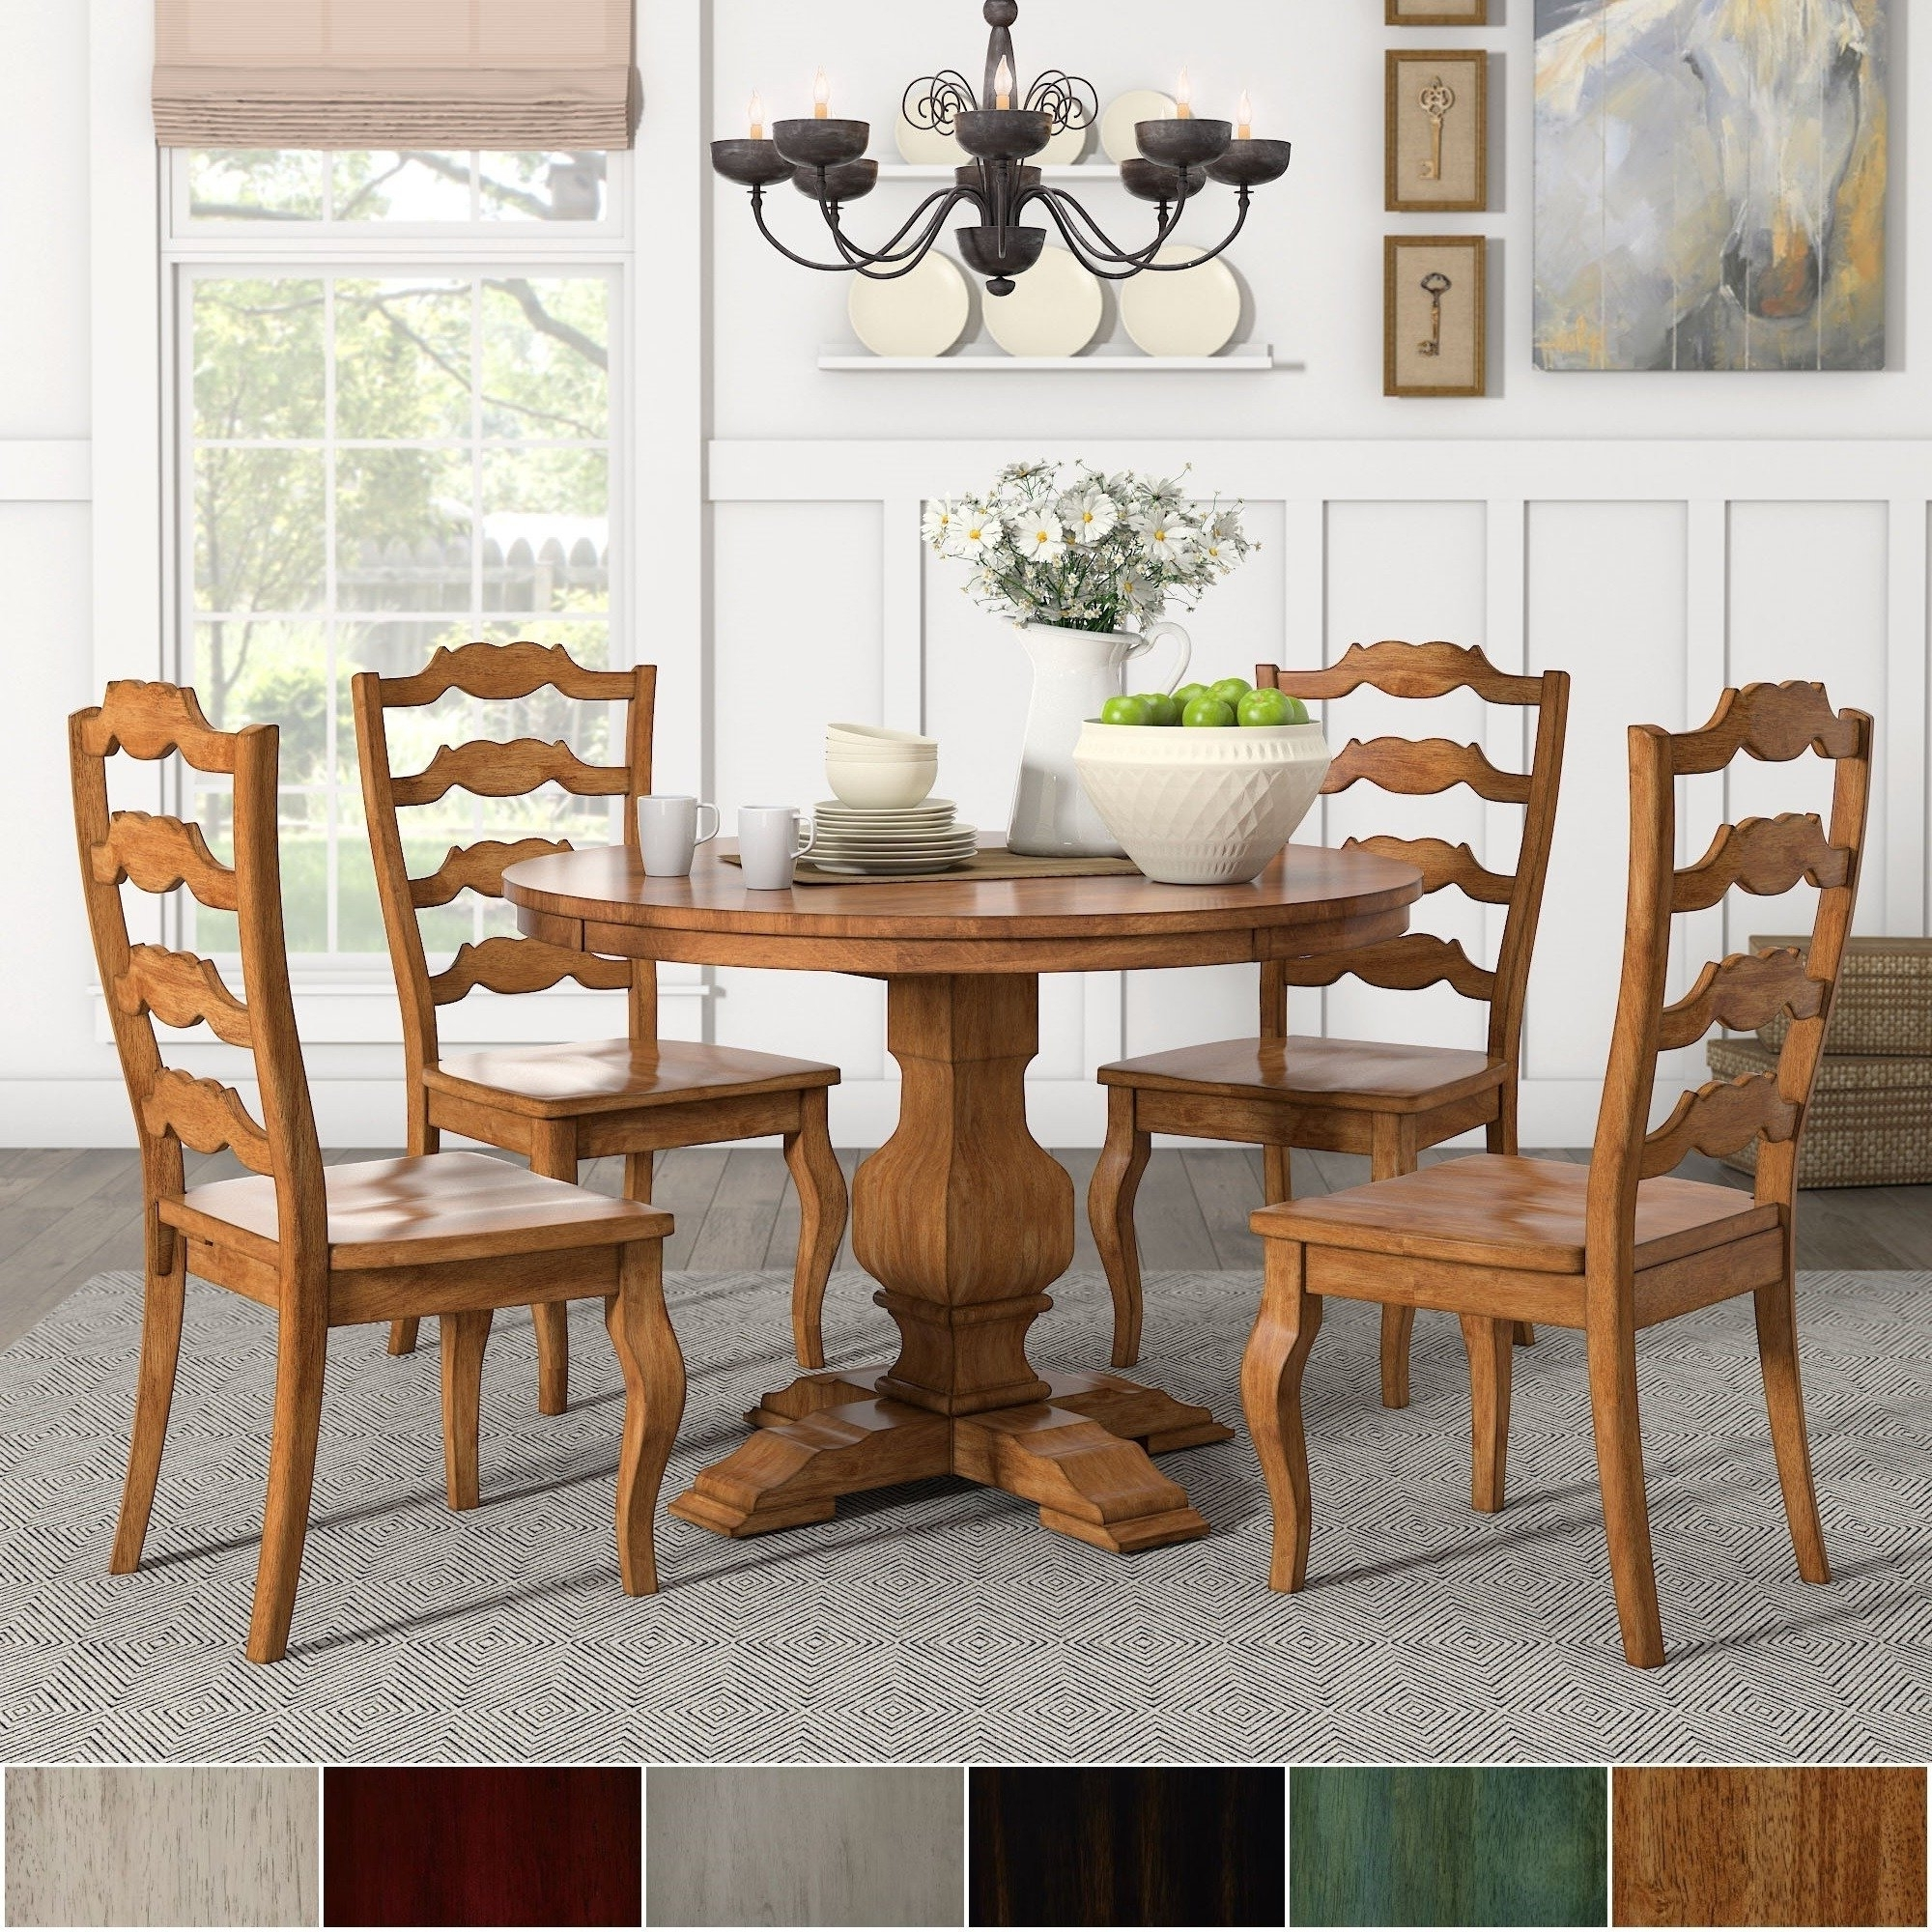 Eleanor Oak Round Soild Wood Top Ladder Back 5 Piece Dining Set Regarding Most Recently Released Caden 5 Piece Round Dining Sets With Upholstered Side Chairs (Gallery 3 of 25)